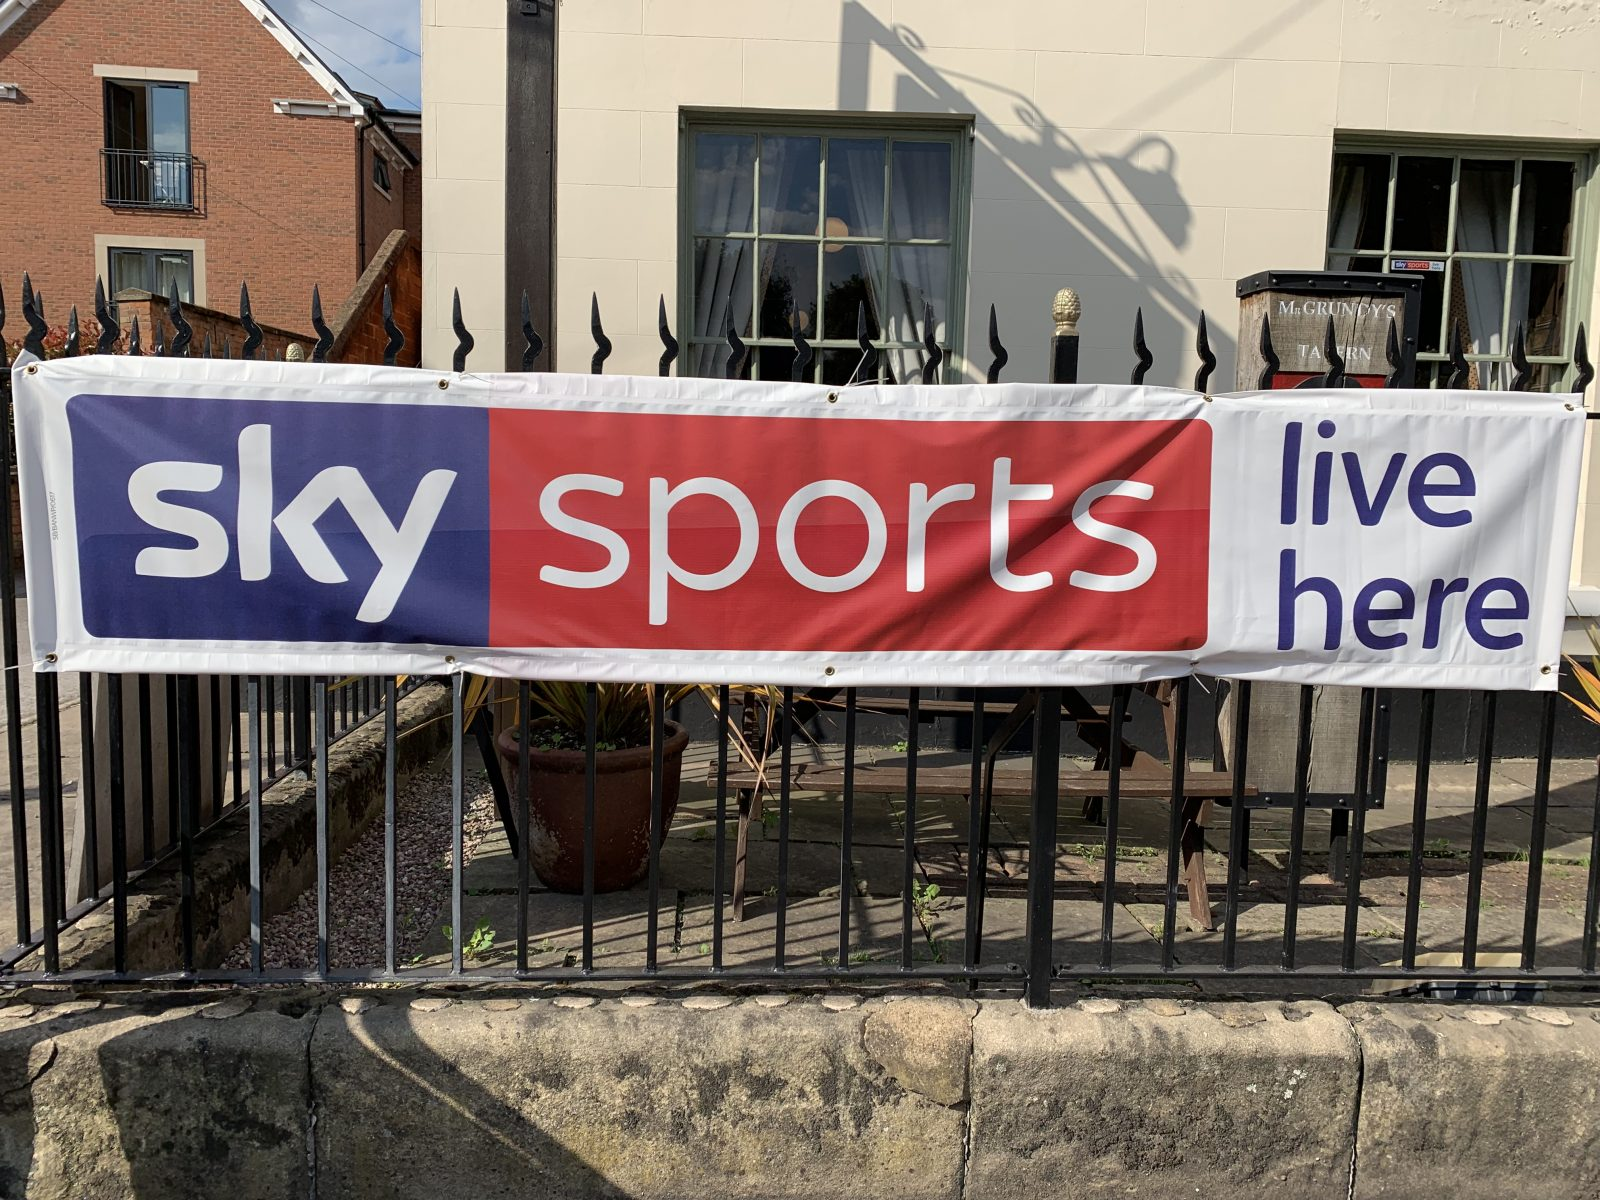 hotels, pubs and bars with sky sports in derby